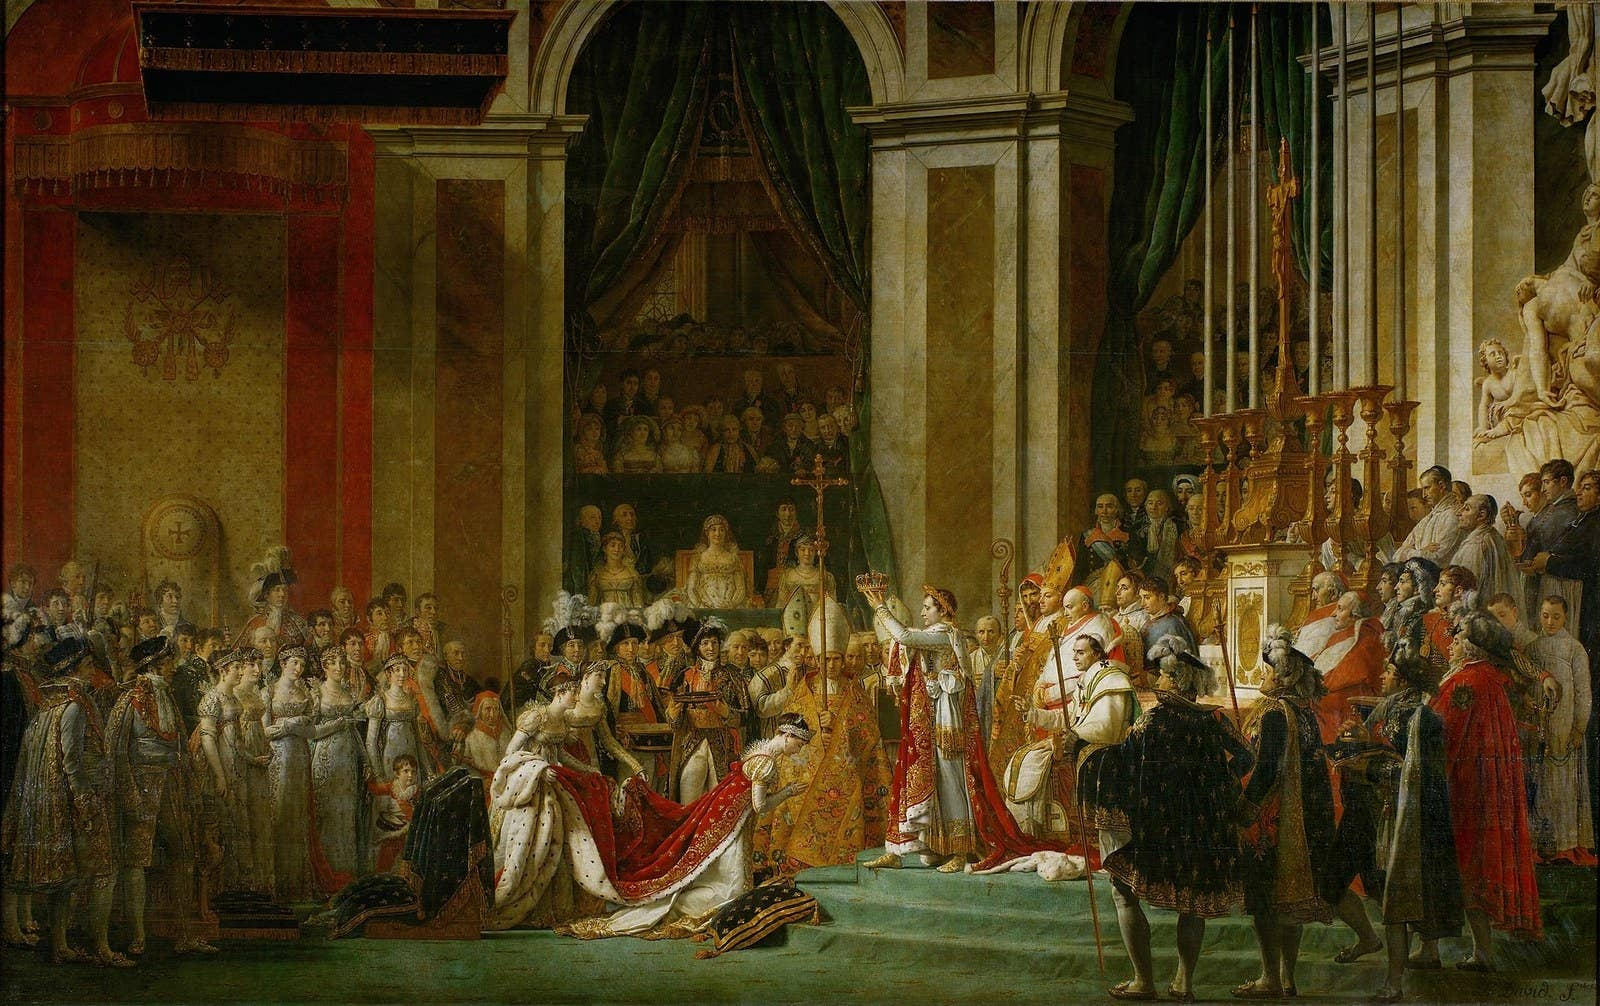 Joséphine kneels before Napoléon I during his coronation at Notre Dame.